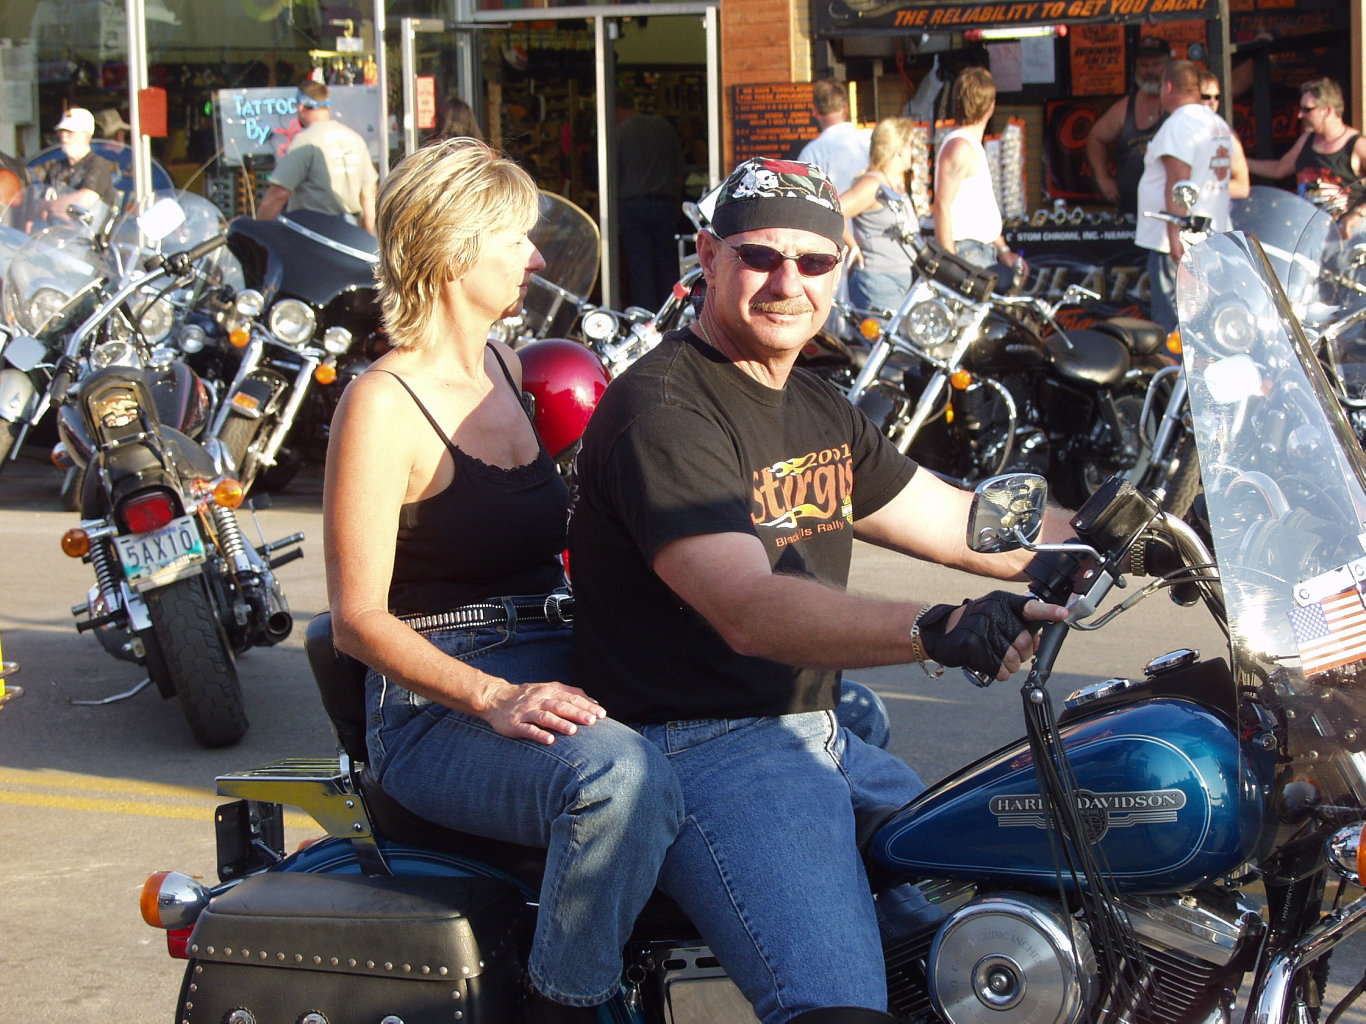 riders of motorcycles